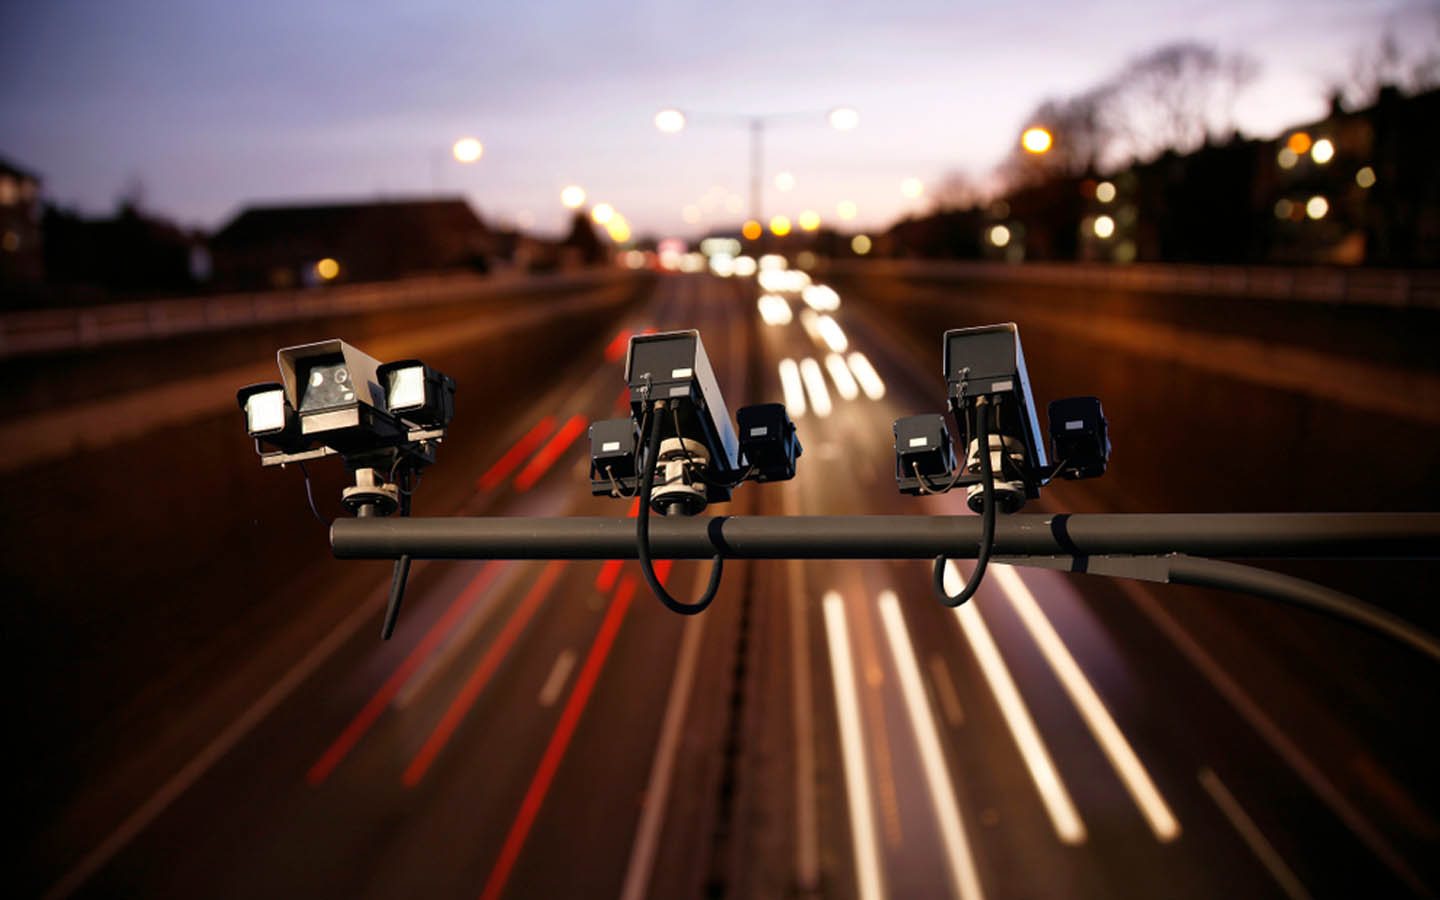 Speed checking cameras placed on a highway